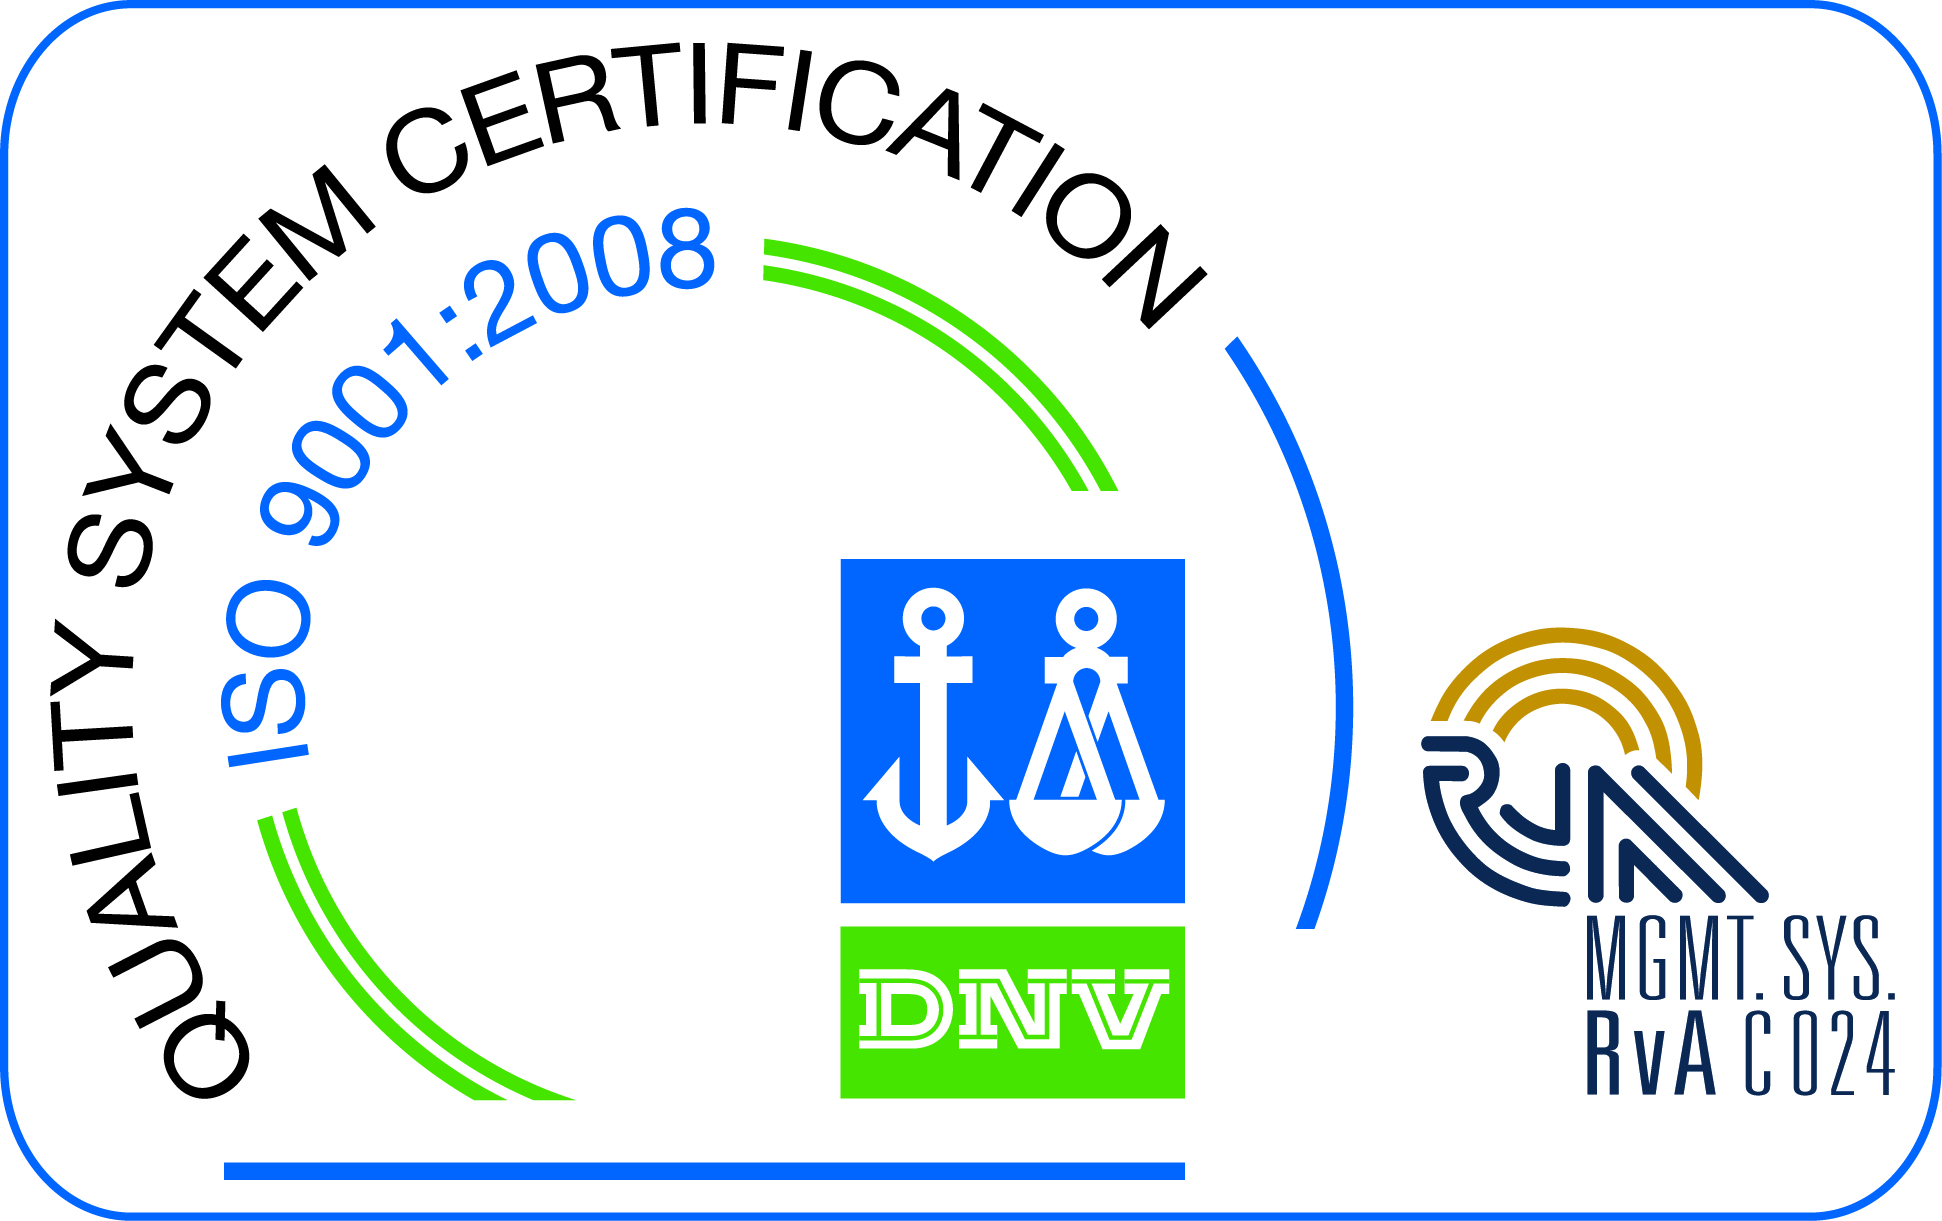 See a copy of Trinity Forge's RvA certificate to ISO-9001:2008